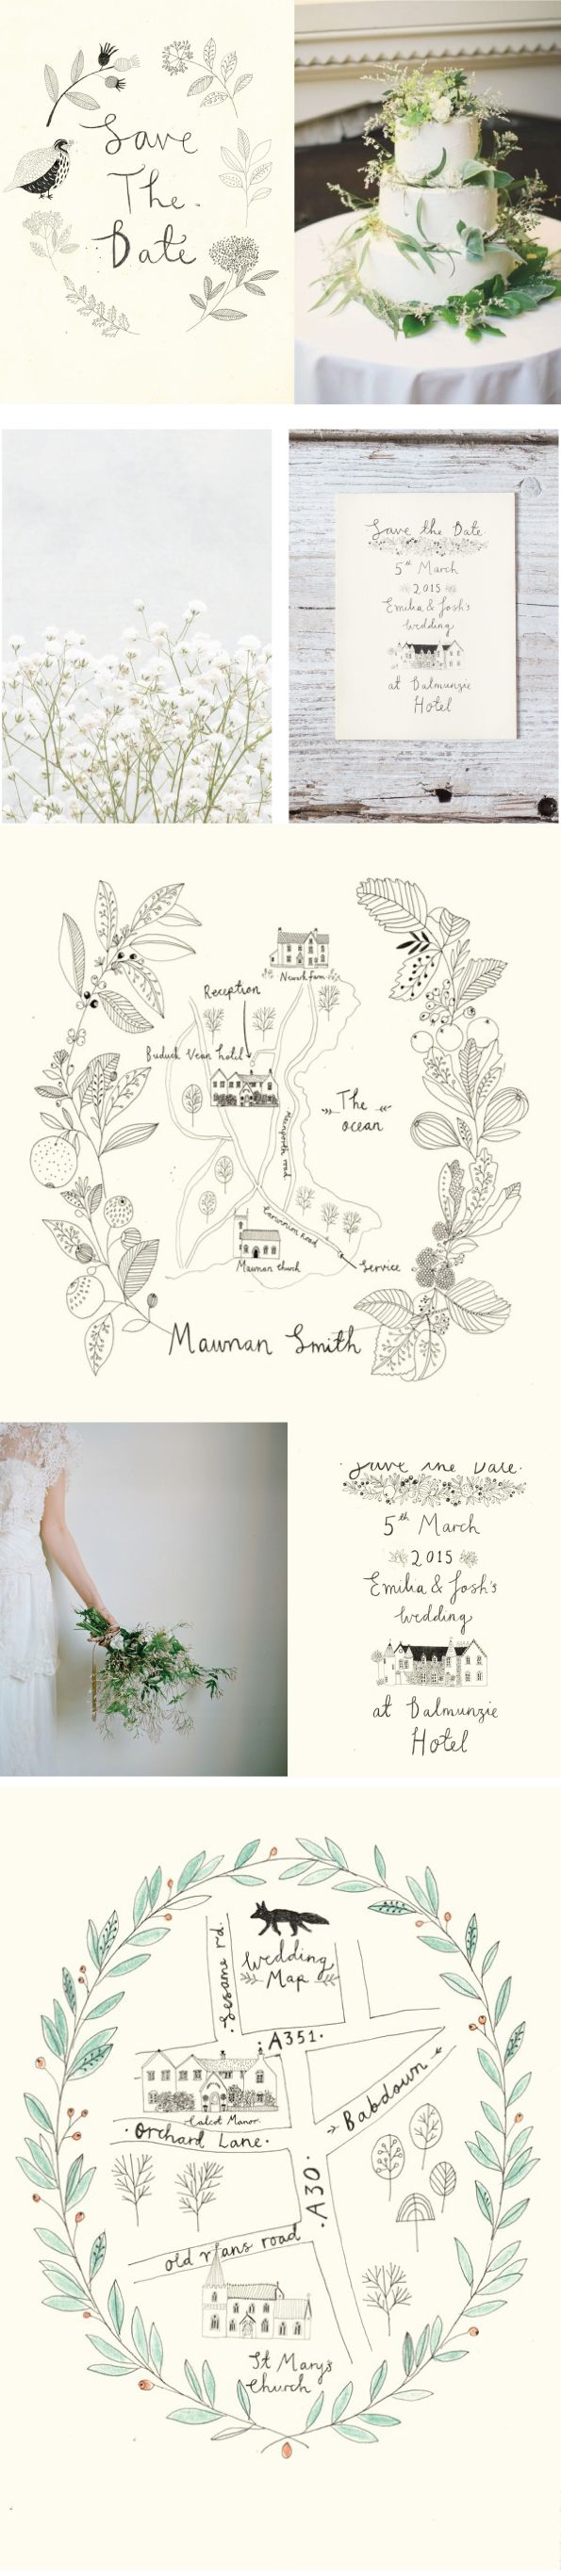 Katt Frank Wedding design.